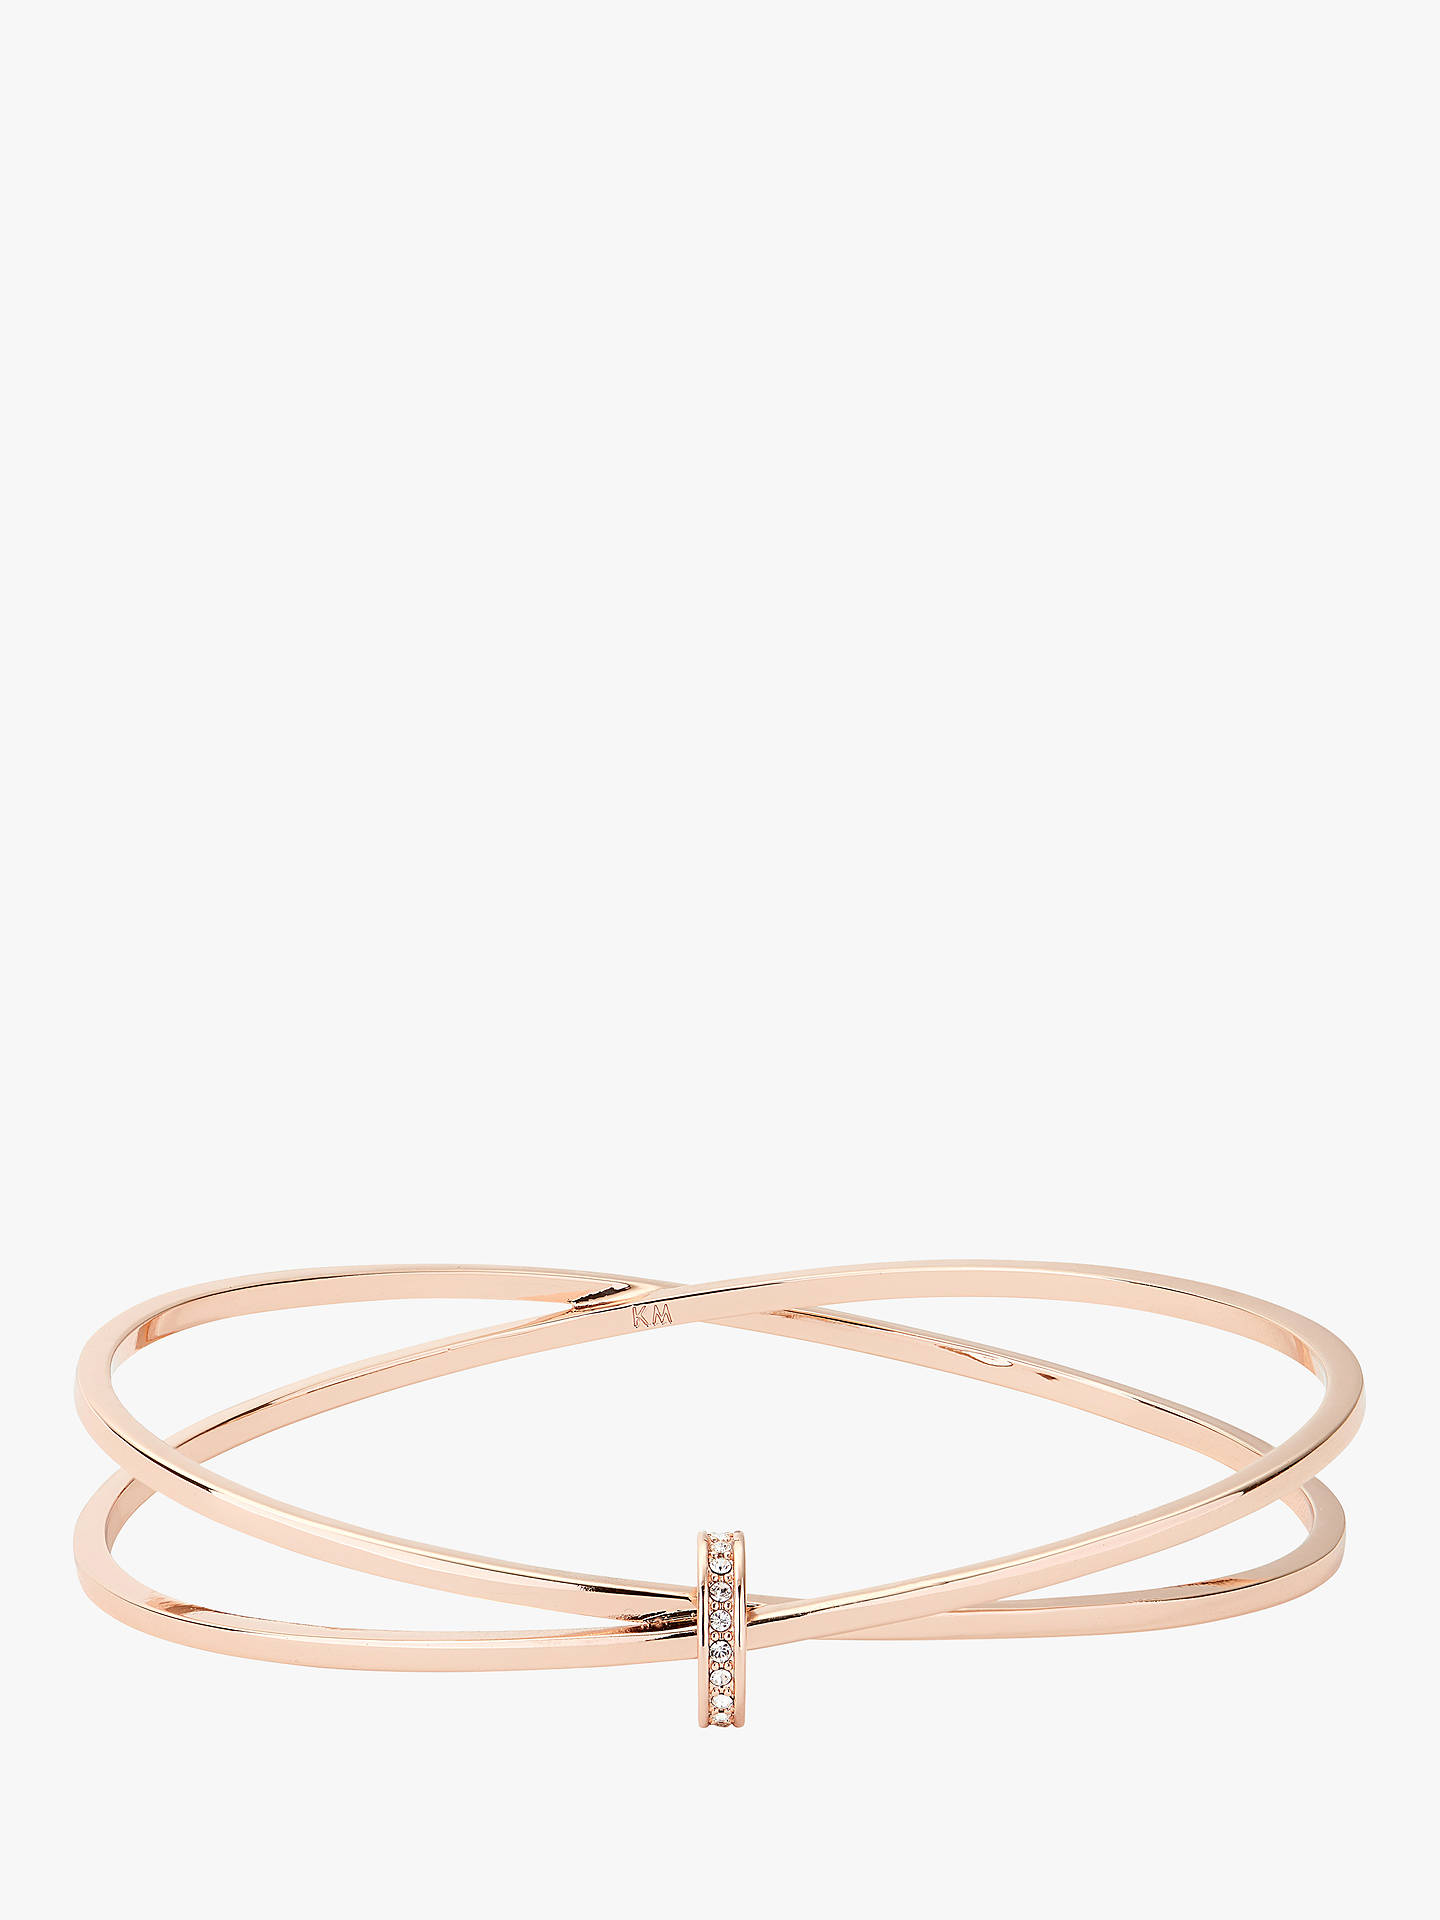 Buy Karen Millen Swarovski Crystal Interlinked Double Slim Bangle, Rose Gold Online at johnlewis.com